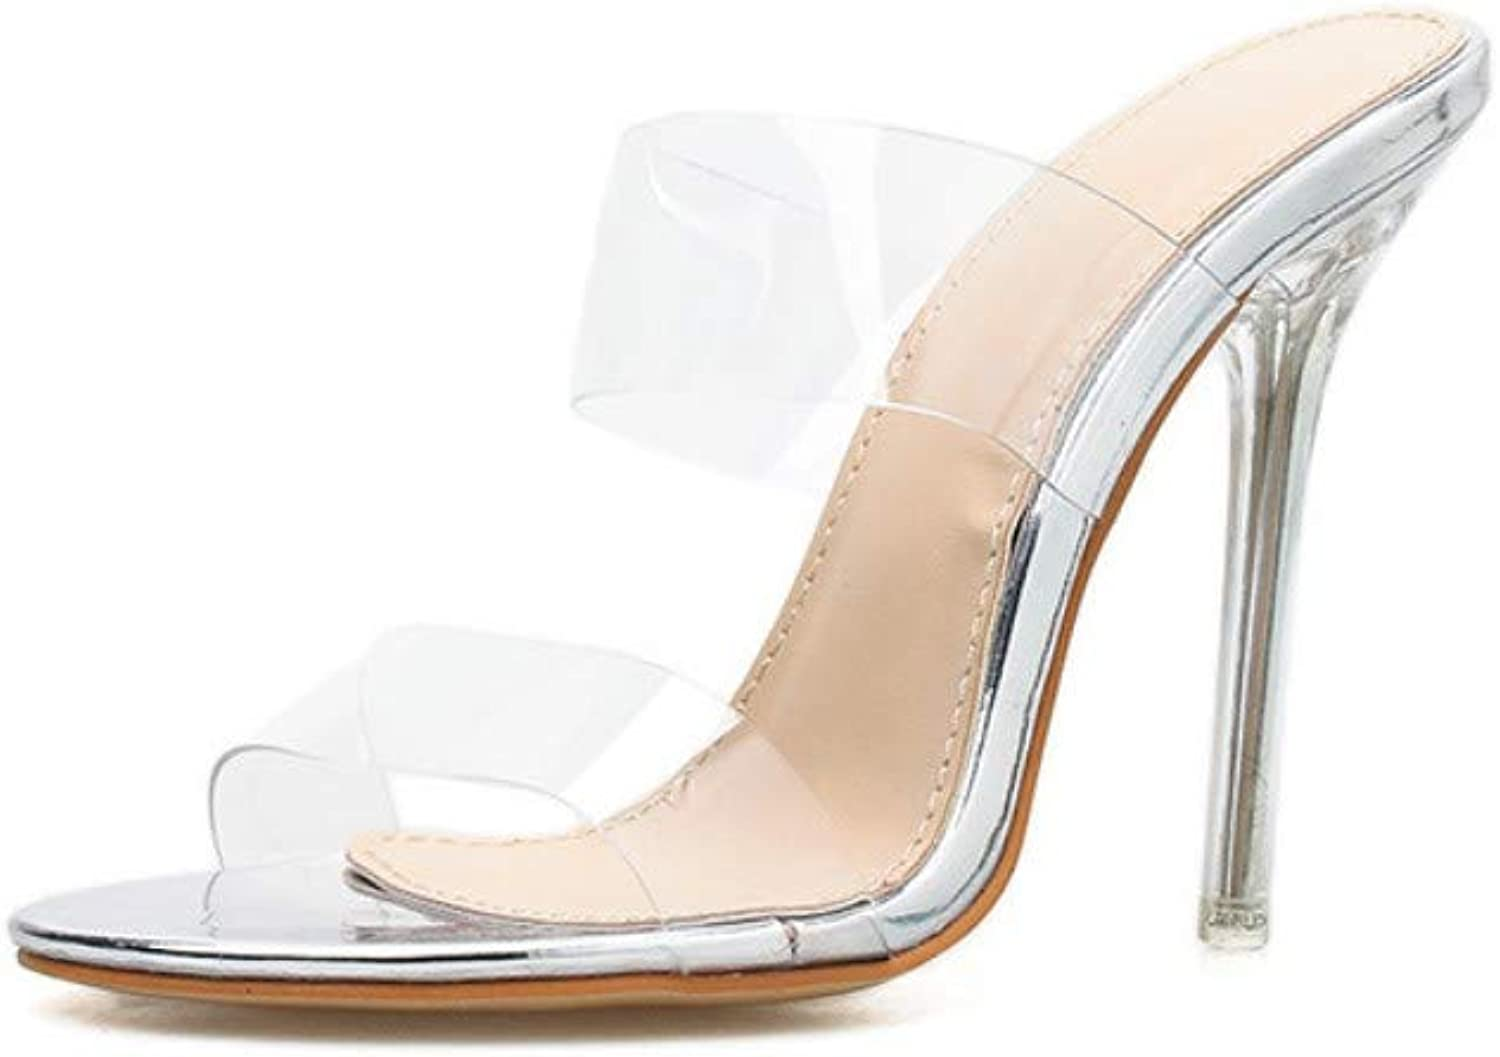 JQfashion Women's High-Heeled Sandals Transparent Fashion Outdoor Slippers Miller shoes